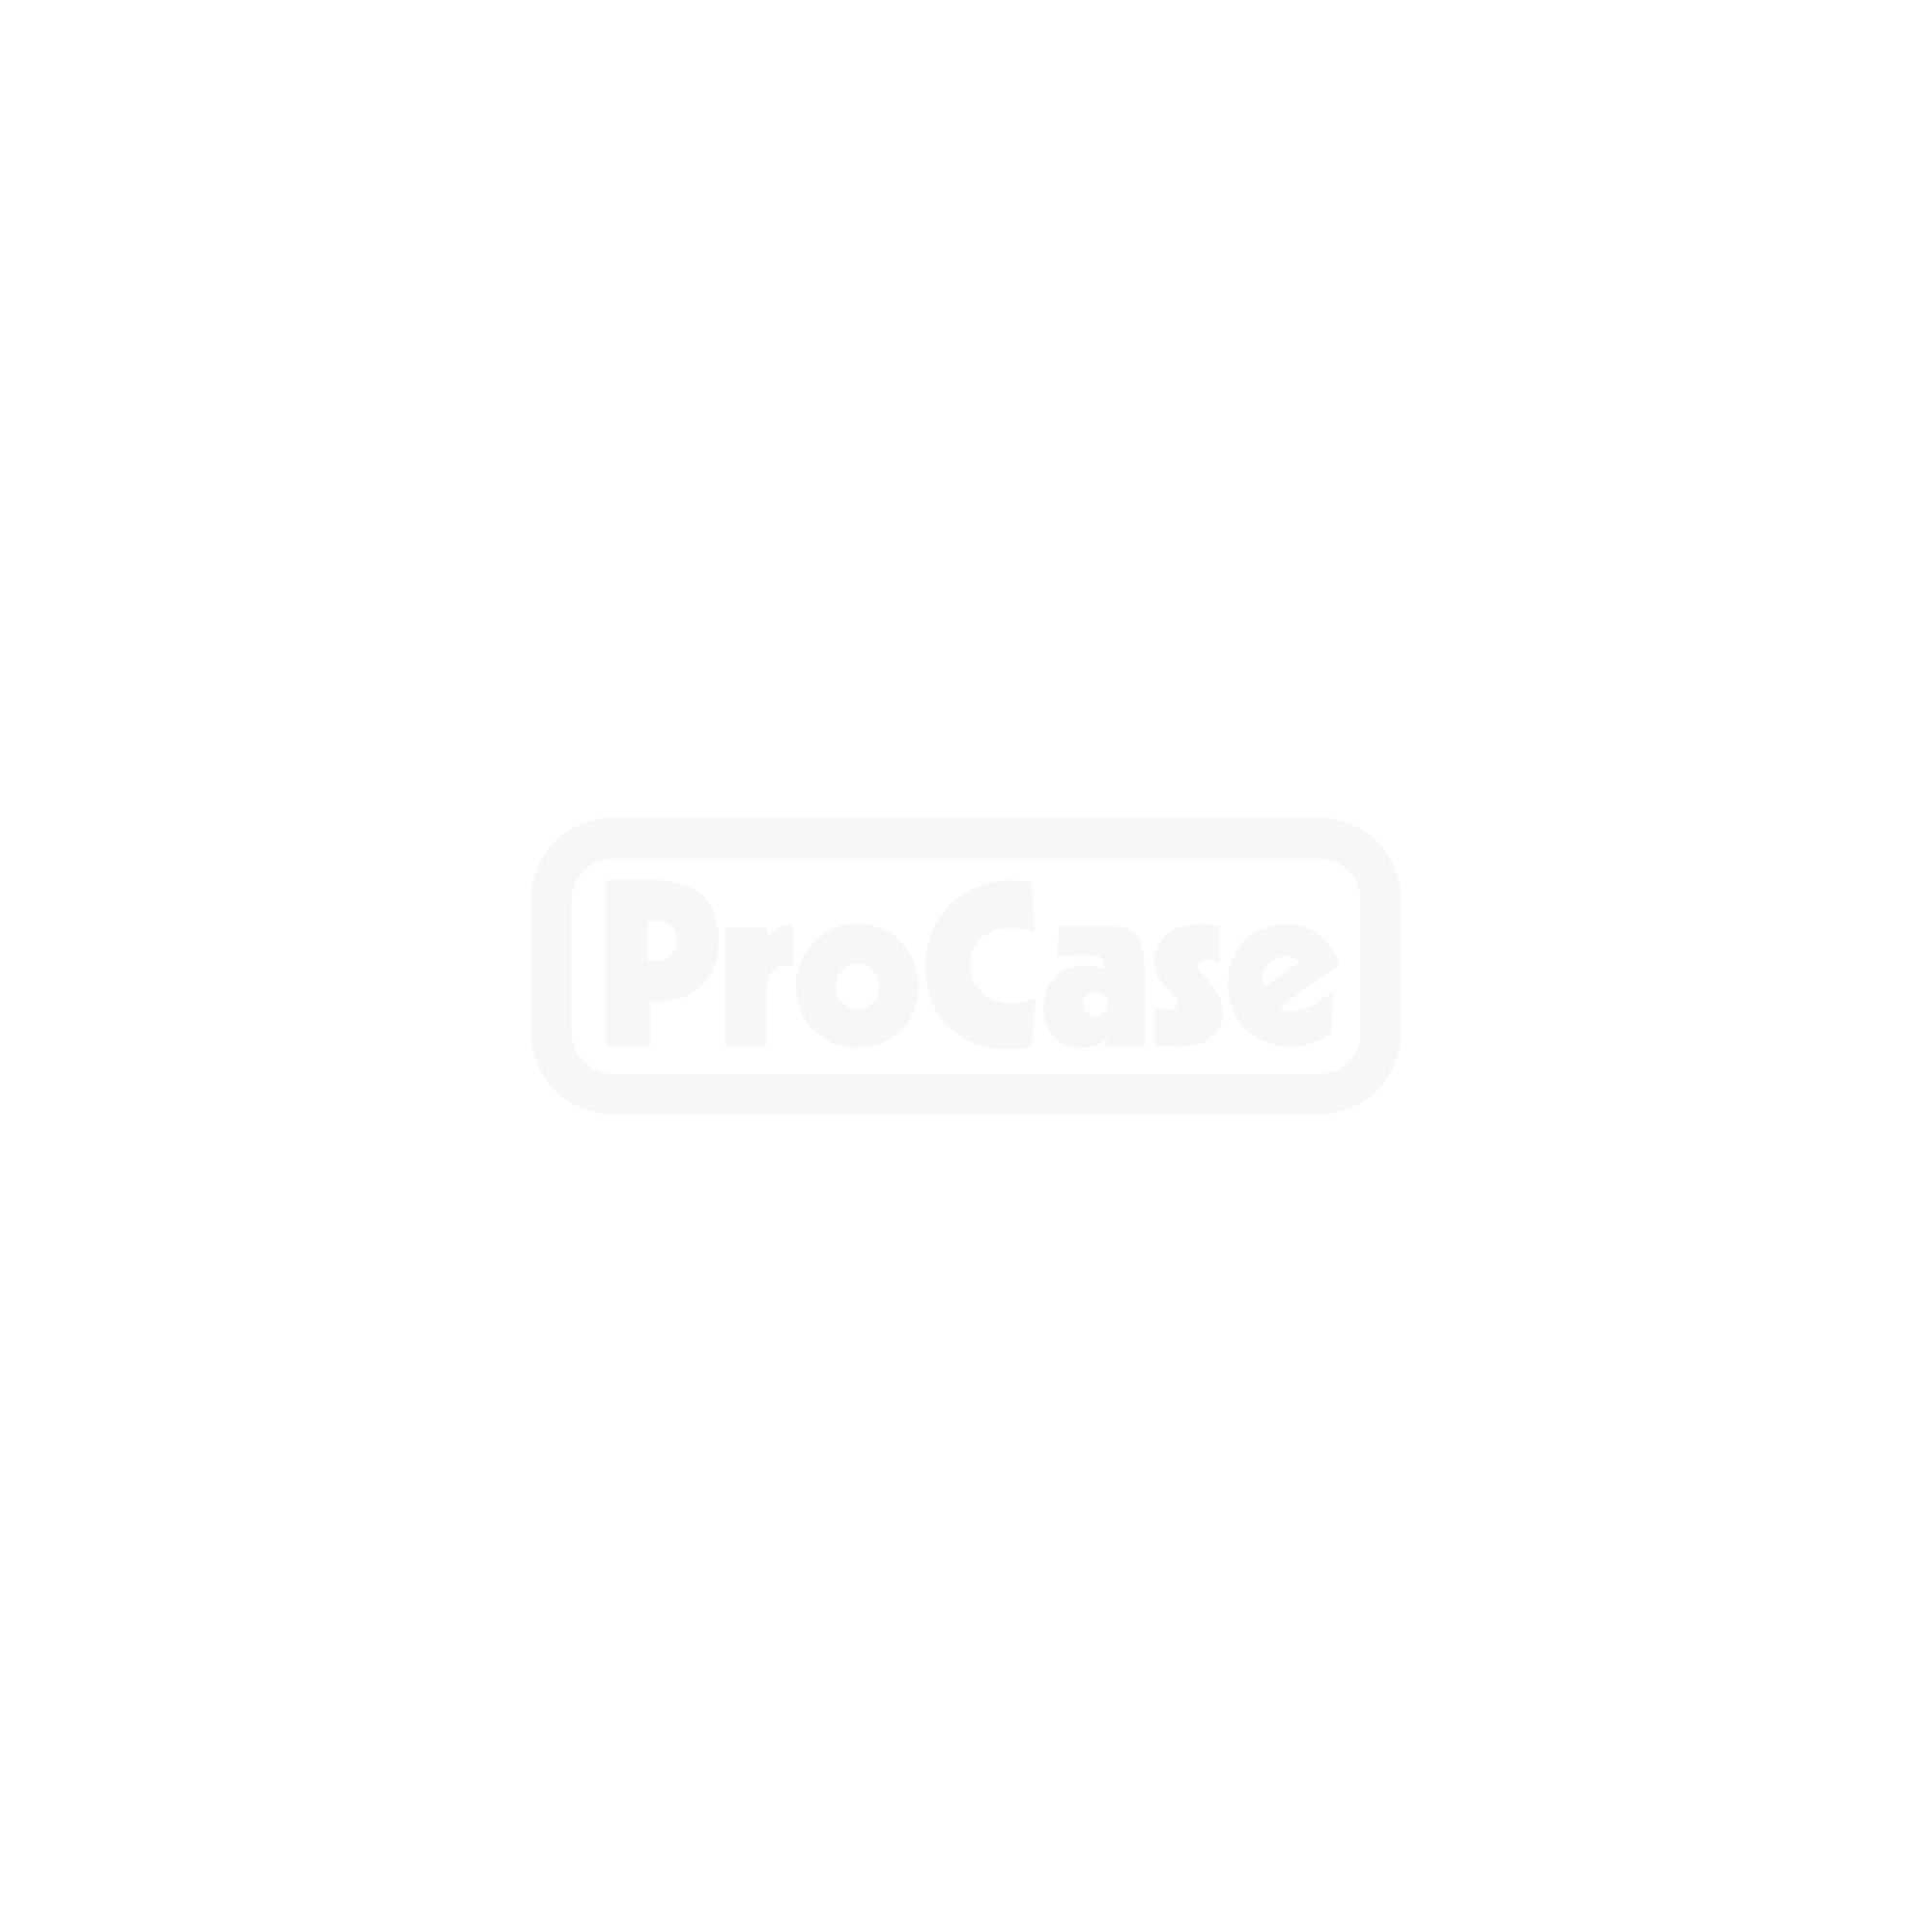 Flightcase für 6x JBLed A7 Zoom / A4